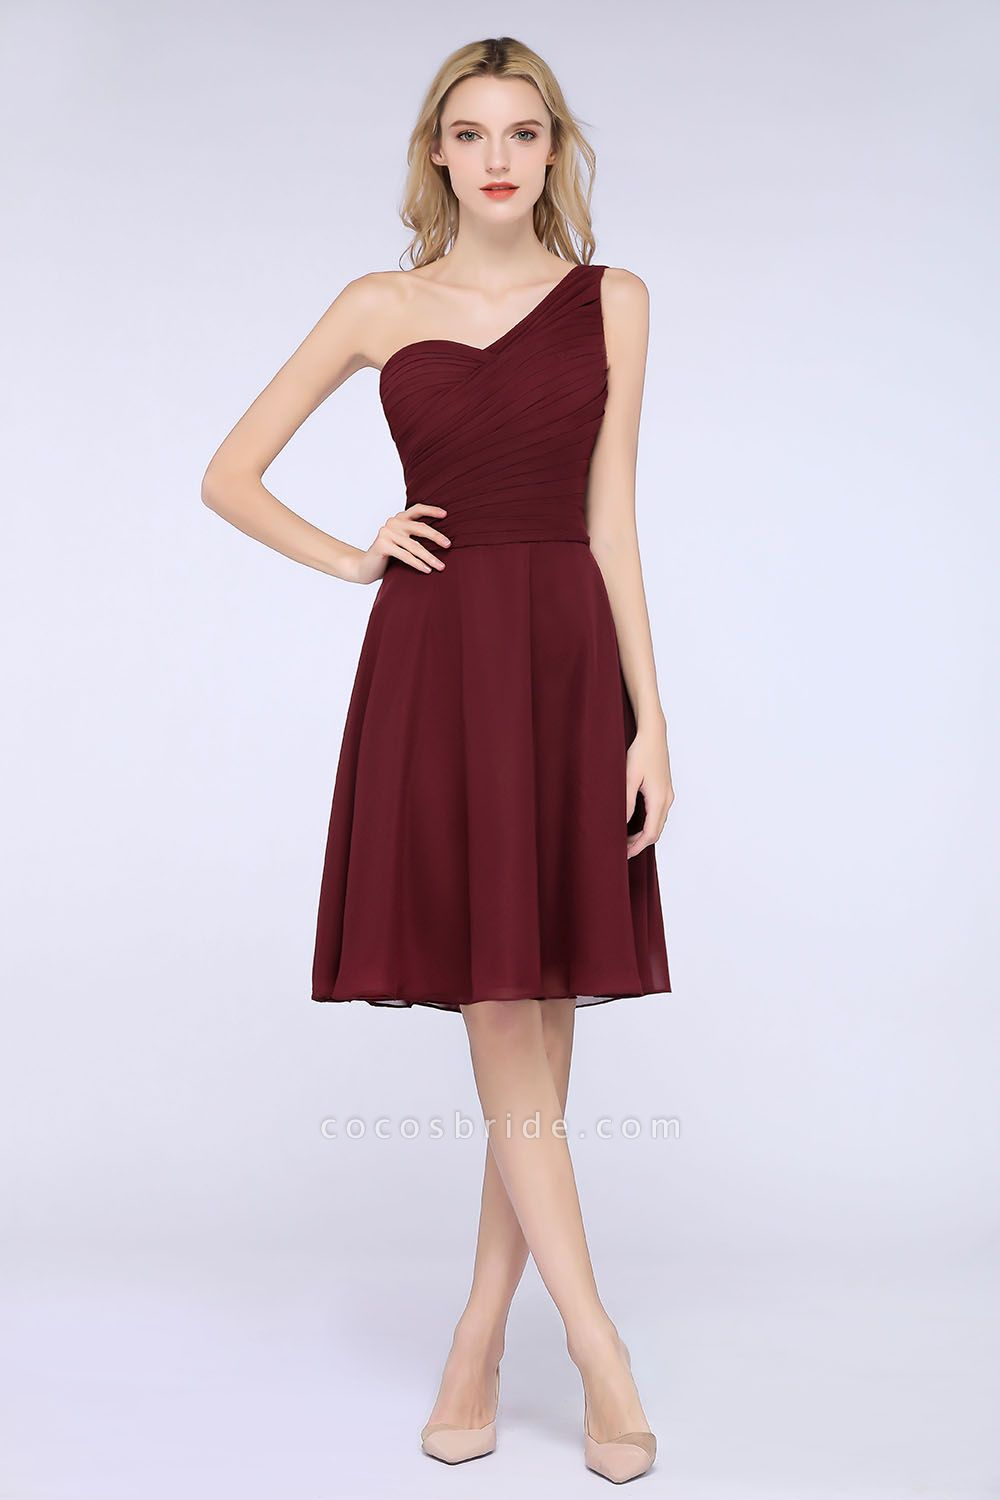 A-Line Chiffon One-Shoulder Sweetheart Sleeveless Knee-Length Bridesmaid Dress with Ruffles